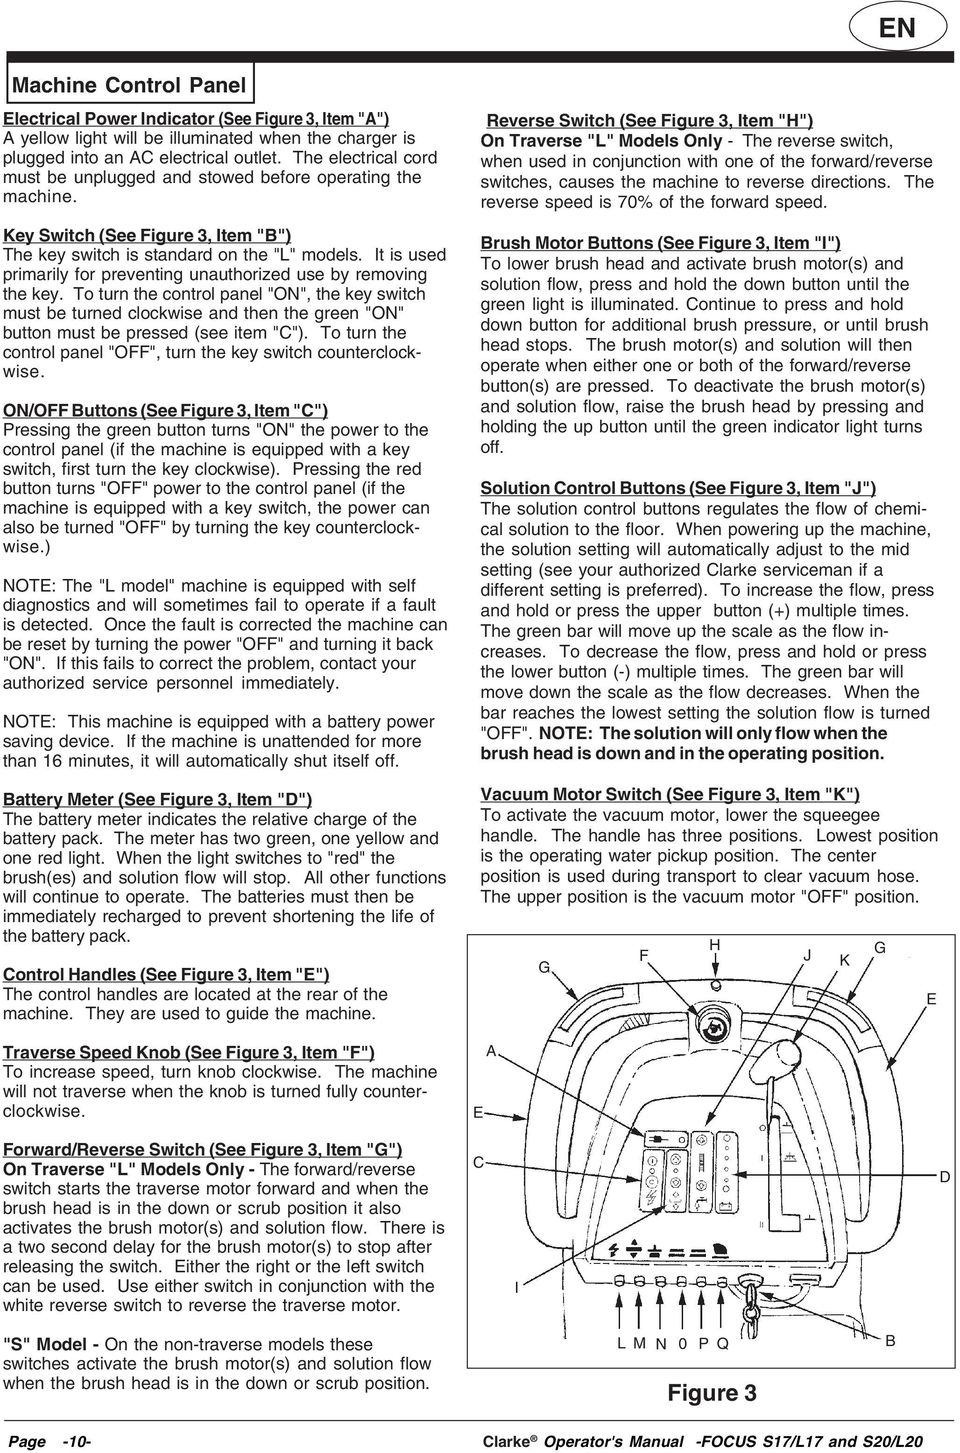 It is used primarily for preventing unauthorized use by removing the key.